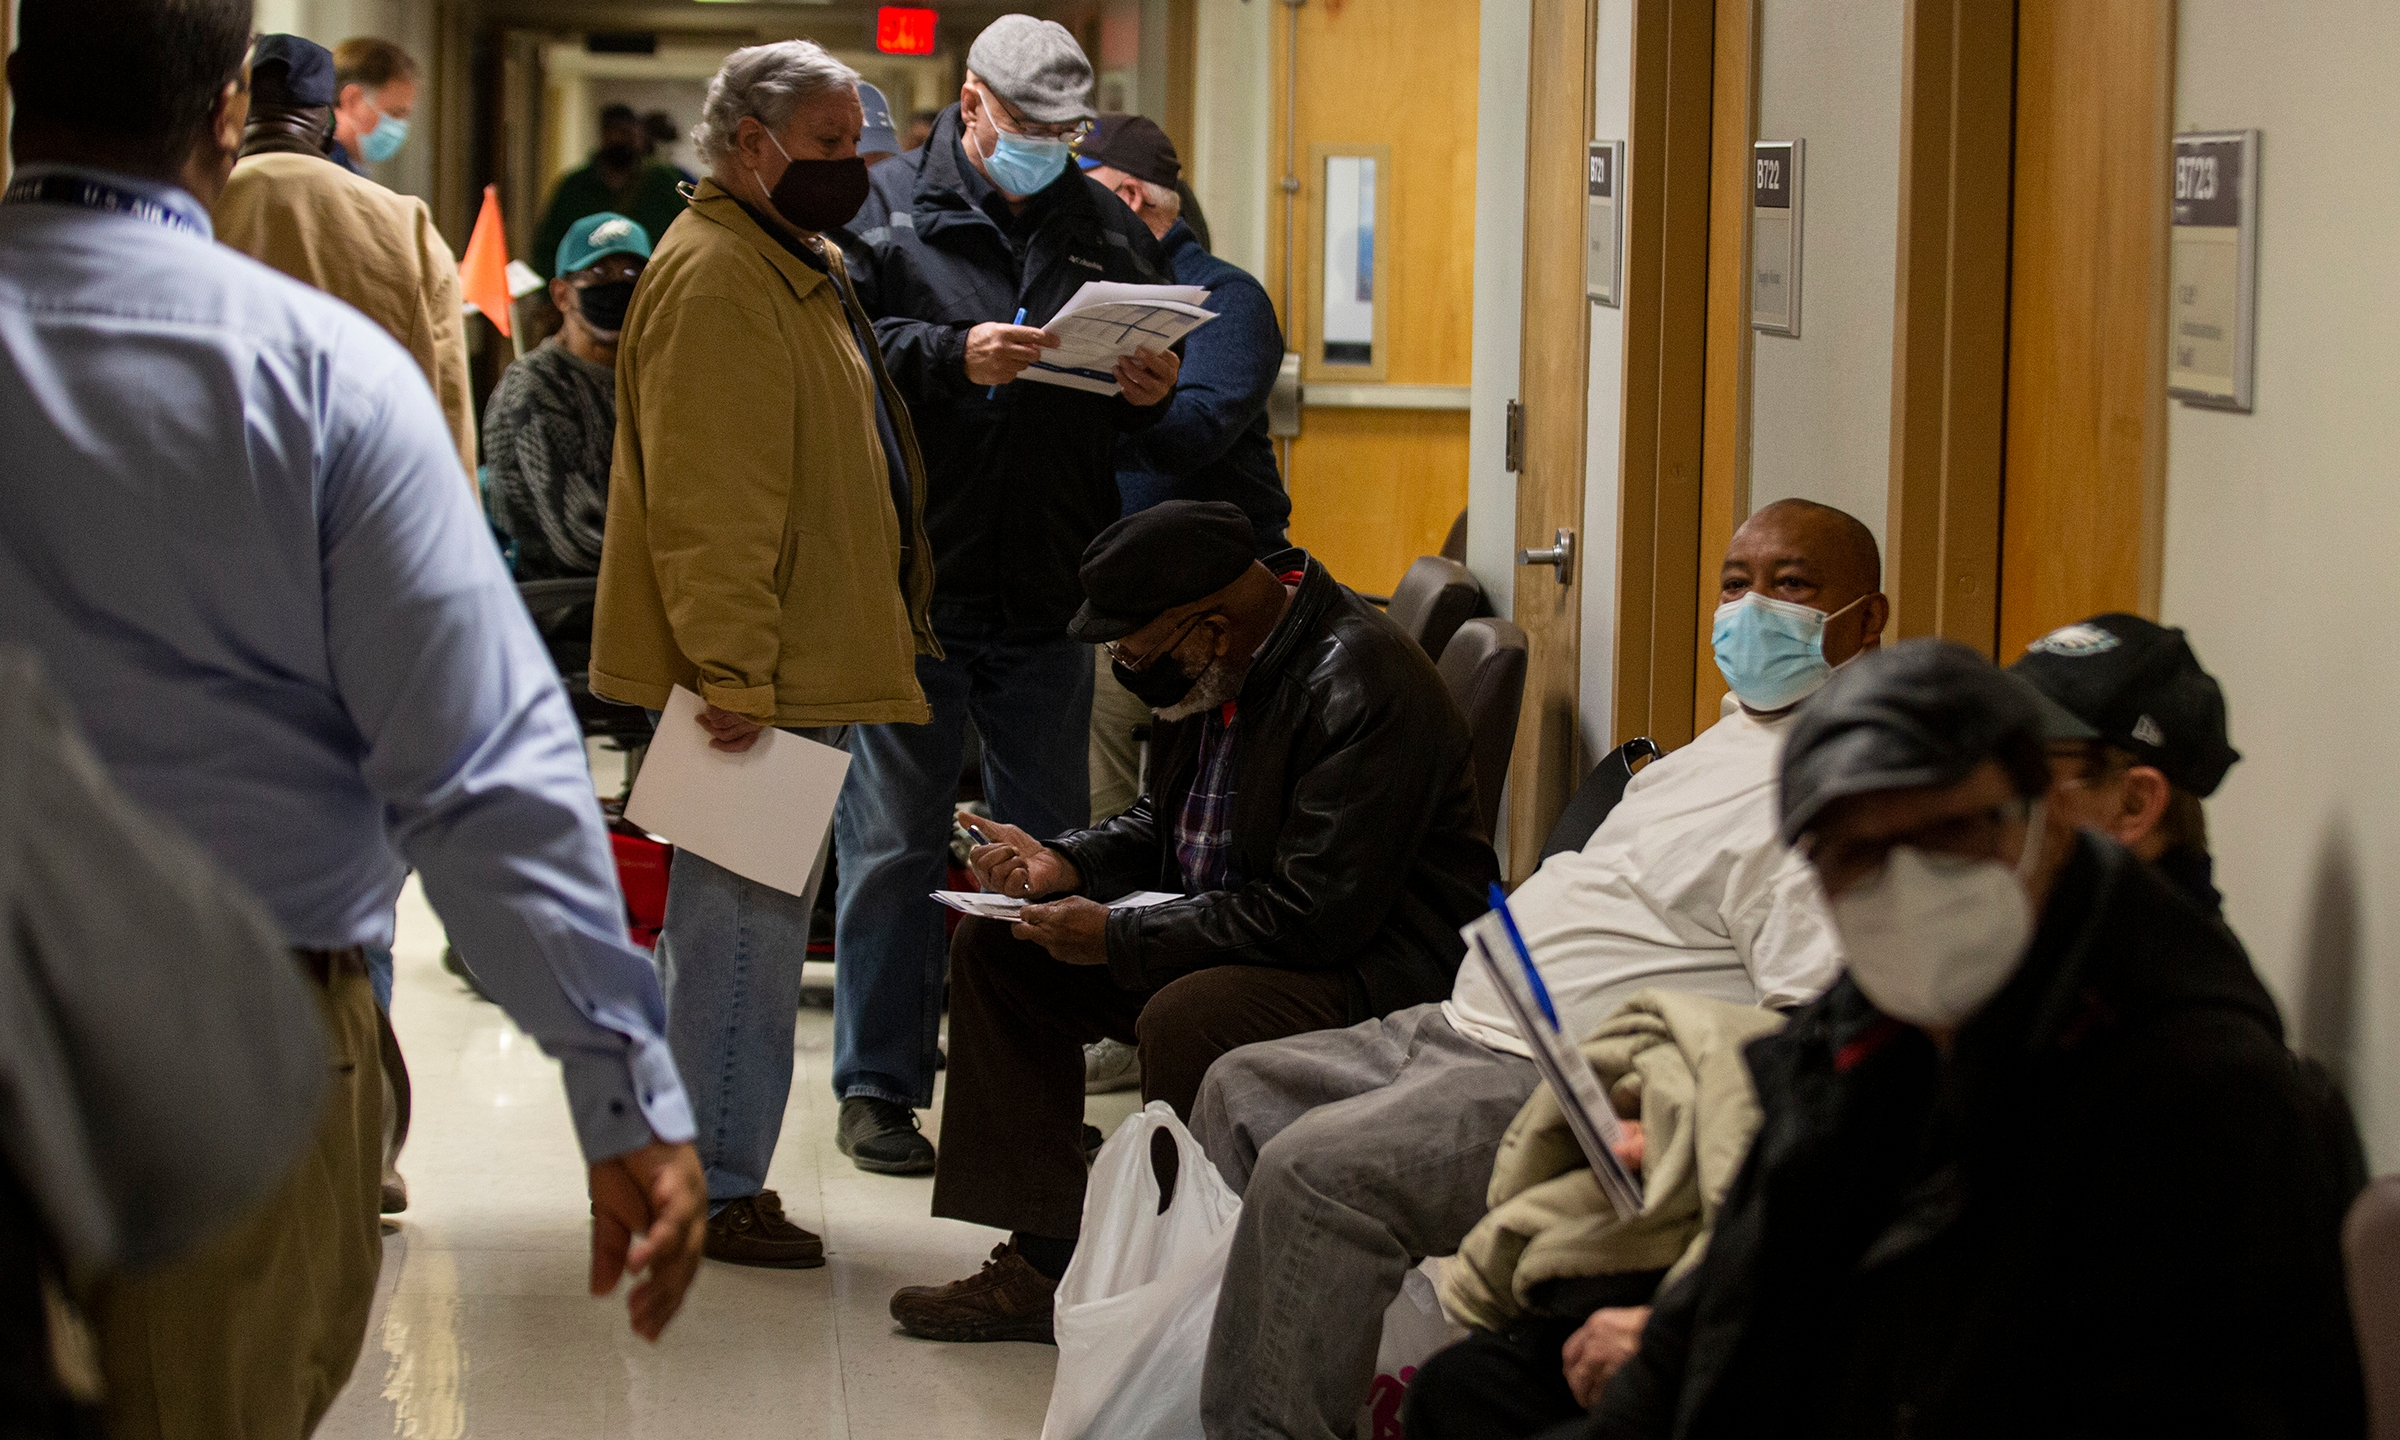 In this Jan. 23, 2021, file photo, veterans wait in line inside the VA Medical Center in Philadelphia to receive the COVID-19 vaccine during a walk-in clinic. (Tyger Williams/The Philadelphia Inquirer via AP)